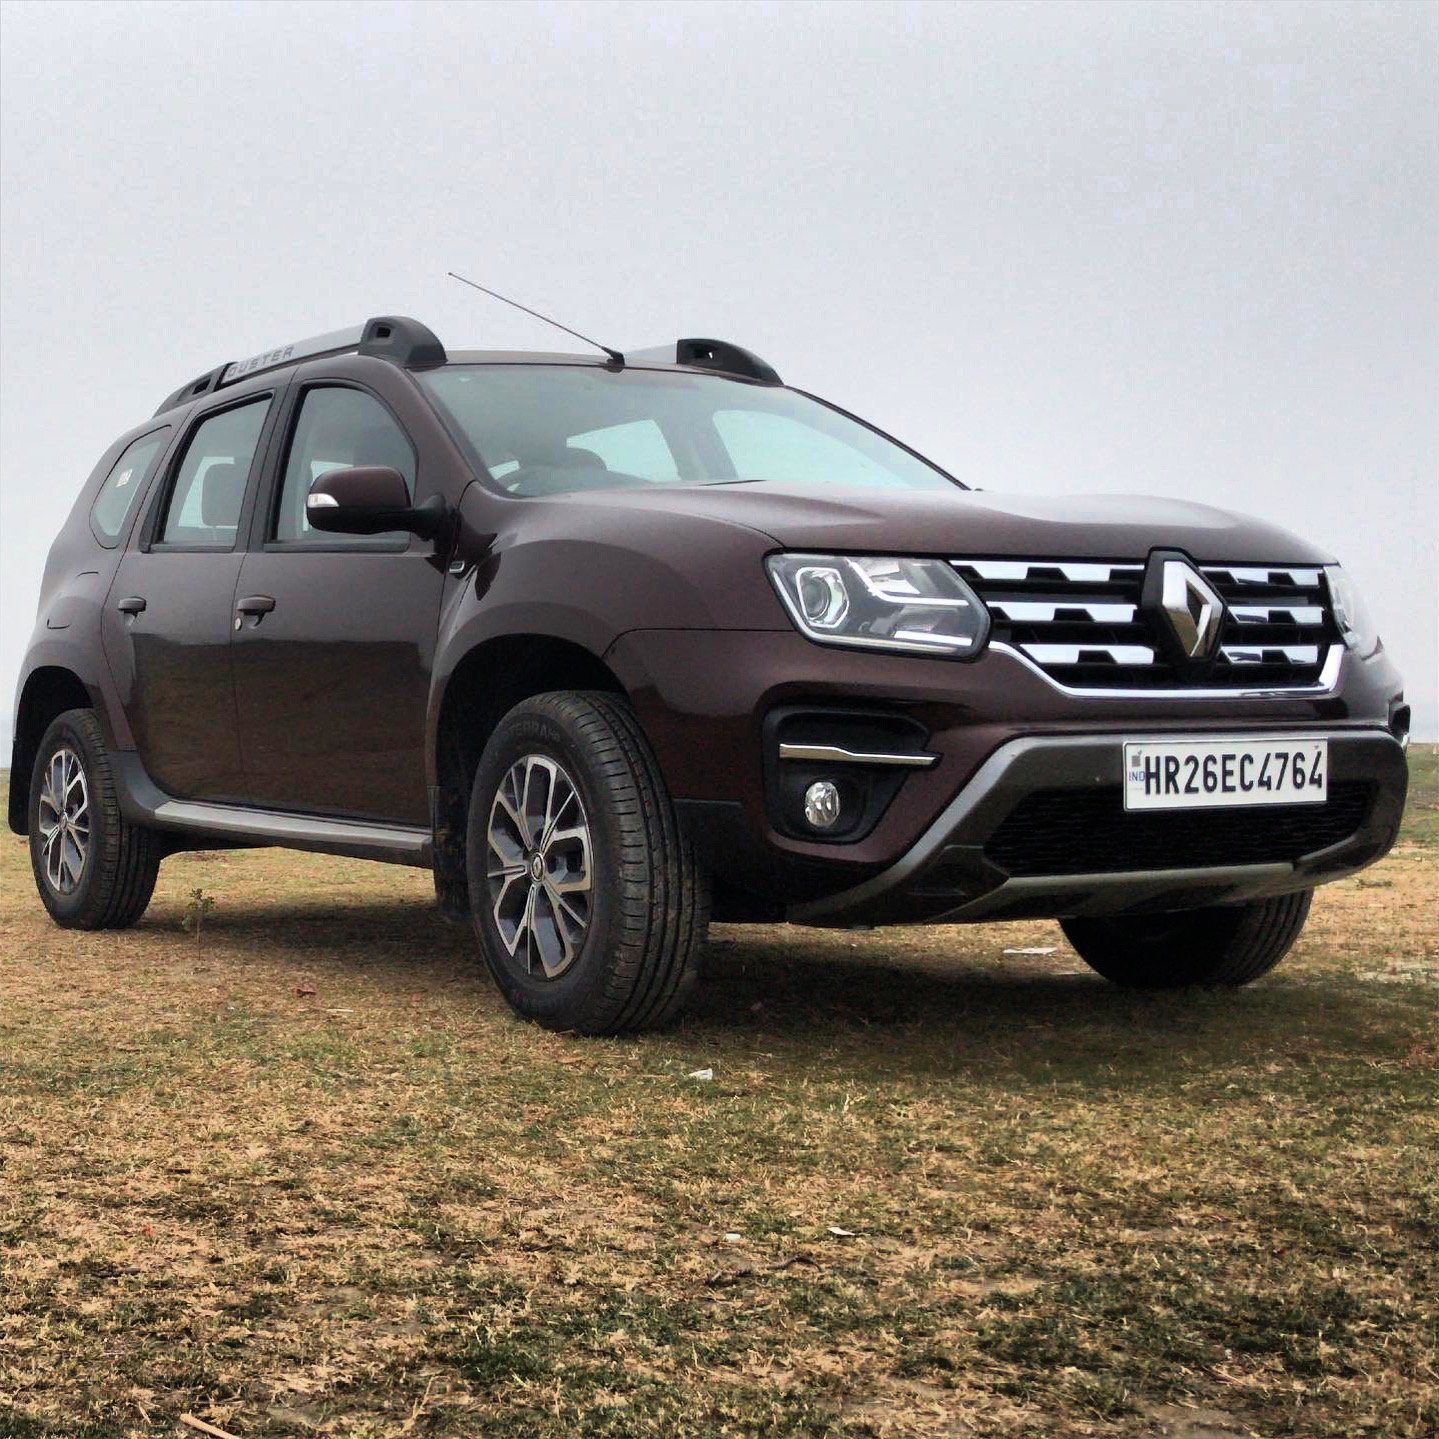 Renault Duster Facelift Price Reduced By Up To Rs 1.5 Lakhs